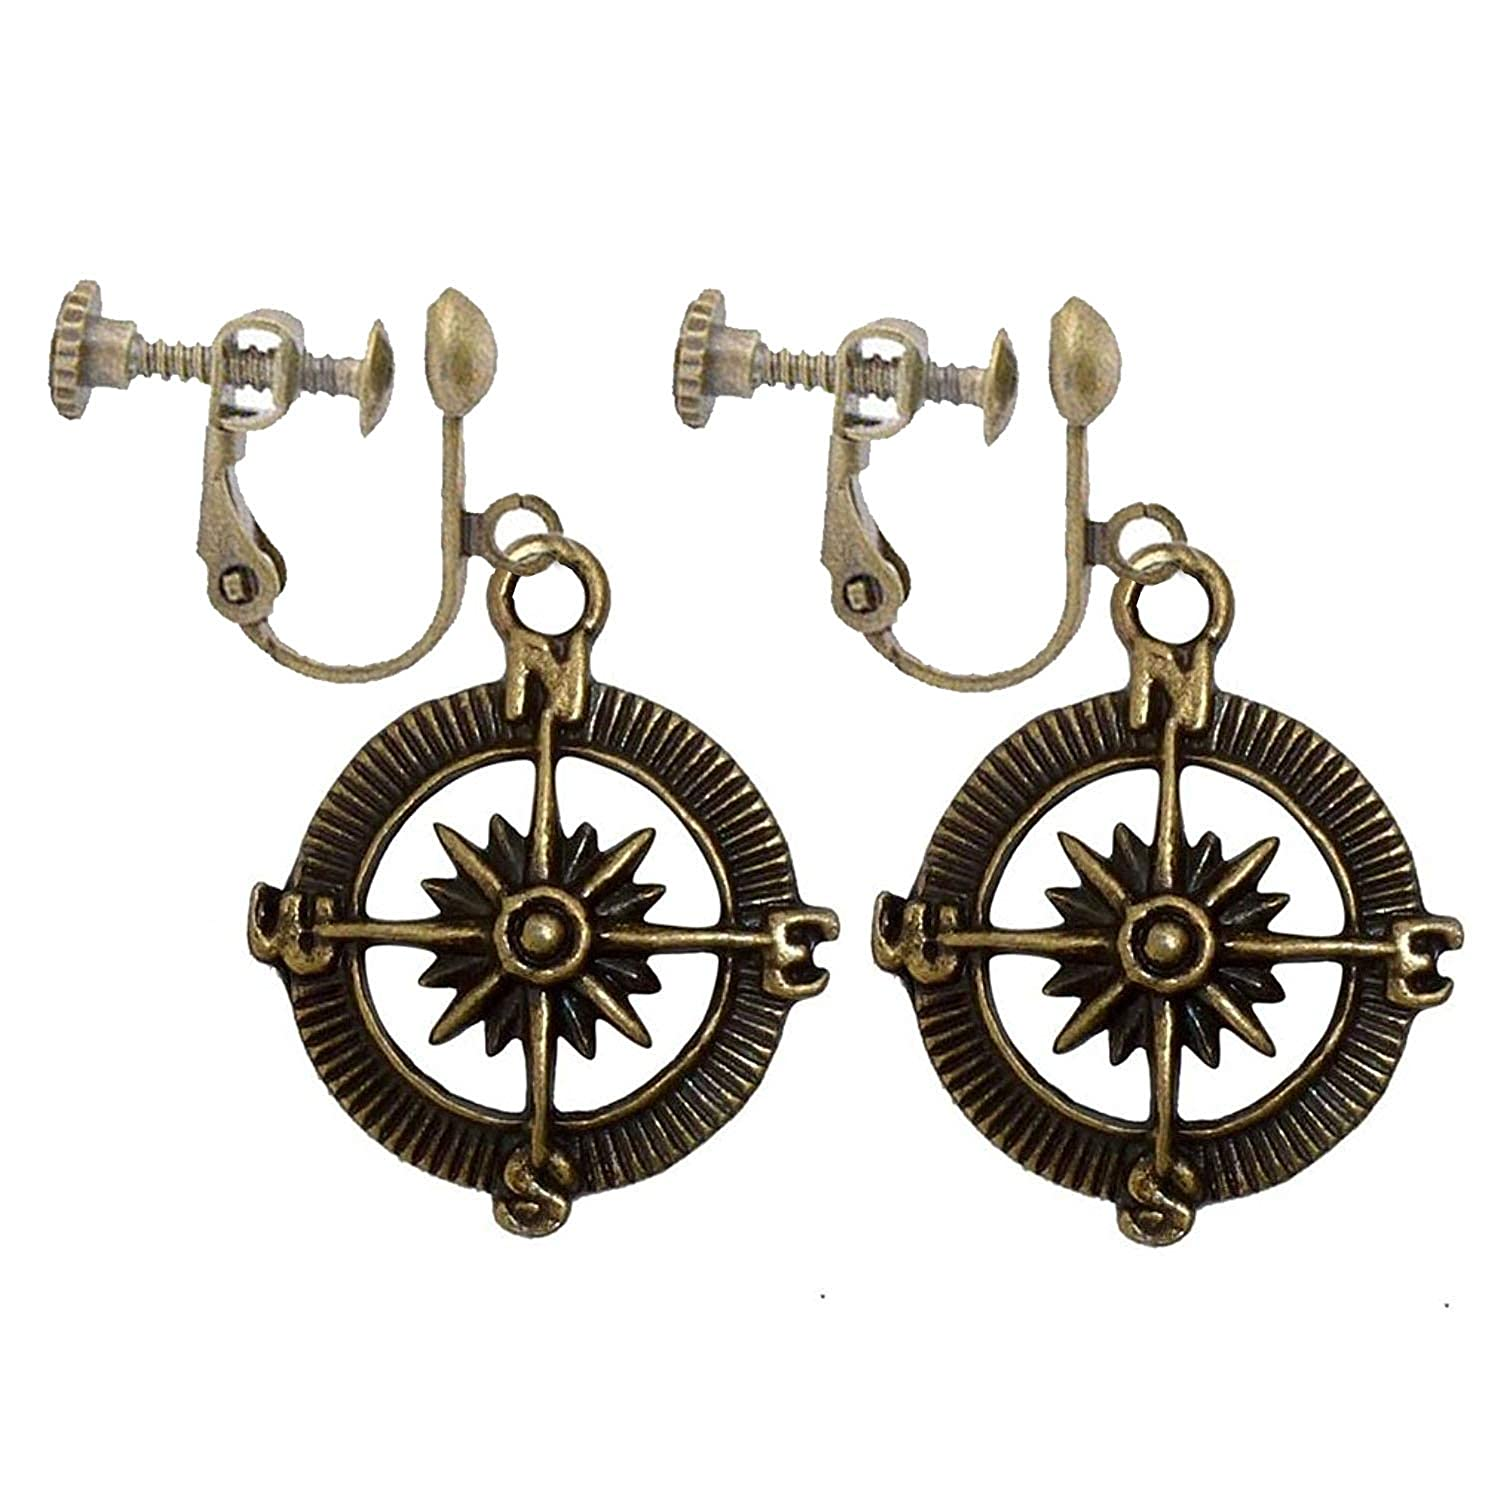 Vintage Steampunk Nautical Pirate Compass Clip on Earrings Pendant Charm Dangle in Antique Style Girls